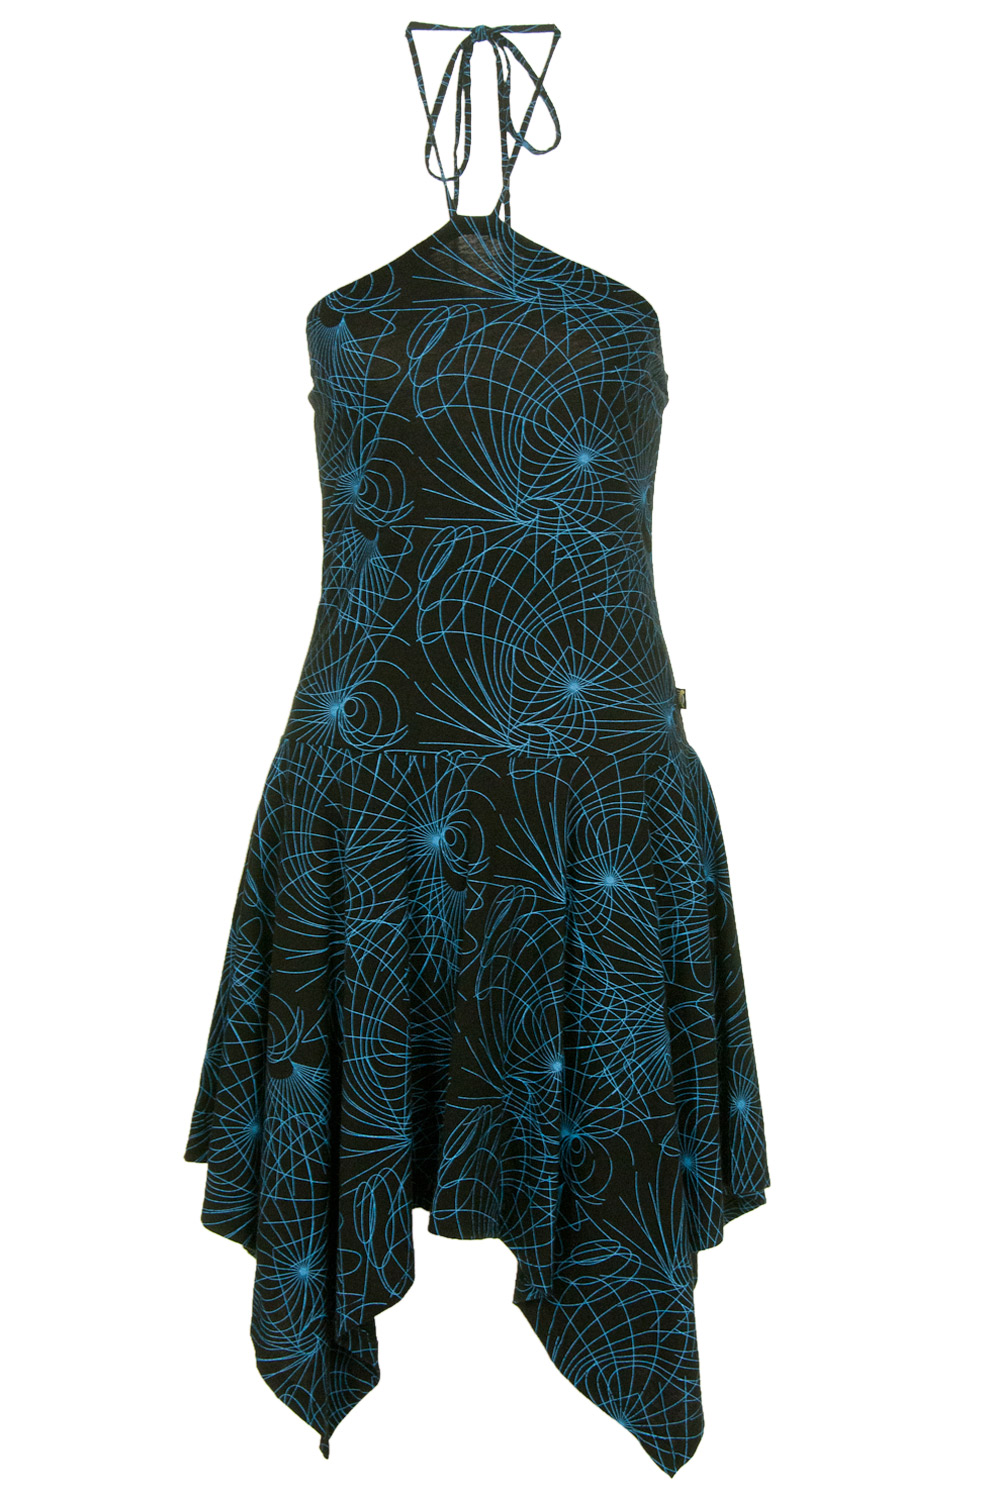 Pygmees Buenos Aires Dress